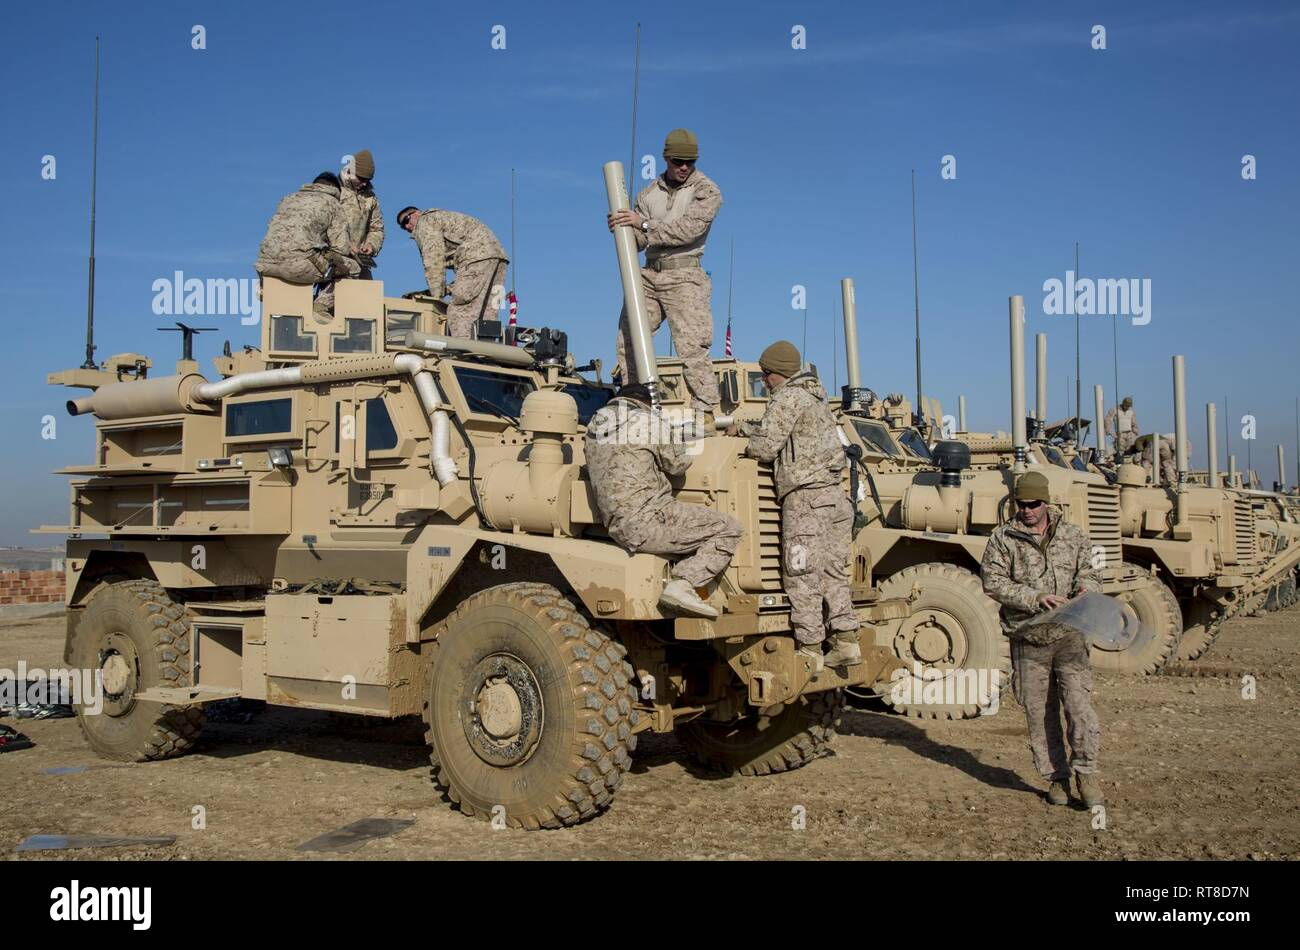 U.S. Marines with India Company, 3rd Battalion, 4th Marine Regiment, attached to Special Purpose Marine Air-Ground Task Force Crisis Response-Central Command, inventory and assemble a mine resistant, ambush-protected vehicle in support of Operation Inherent Resolve, southwest Asia, Jan. 25, 2019.  As a quick reaction force, SPMAGTF-CR-CC Marines utilize the MRAP during mounted convoys to conduct security patrols, working by, with, and through the partner forces to defeat ISIS. Stock Photo